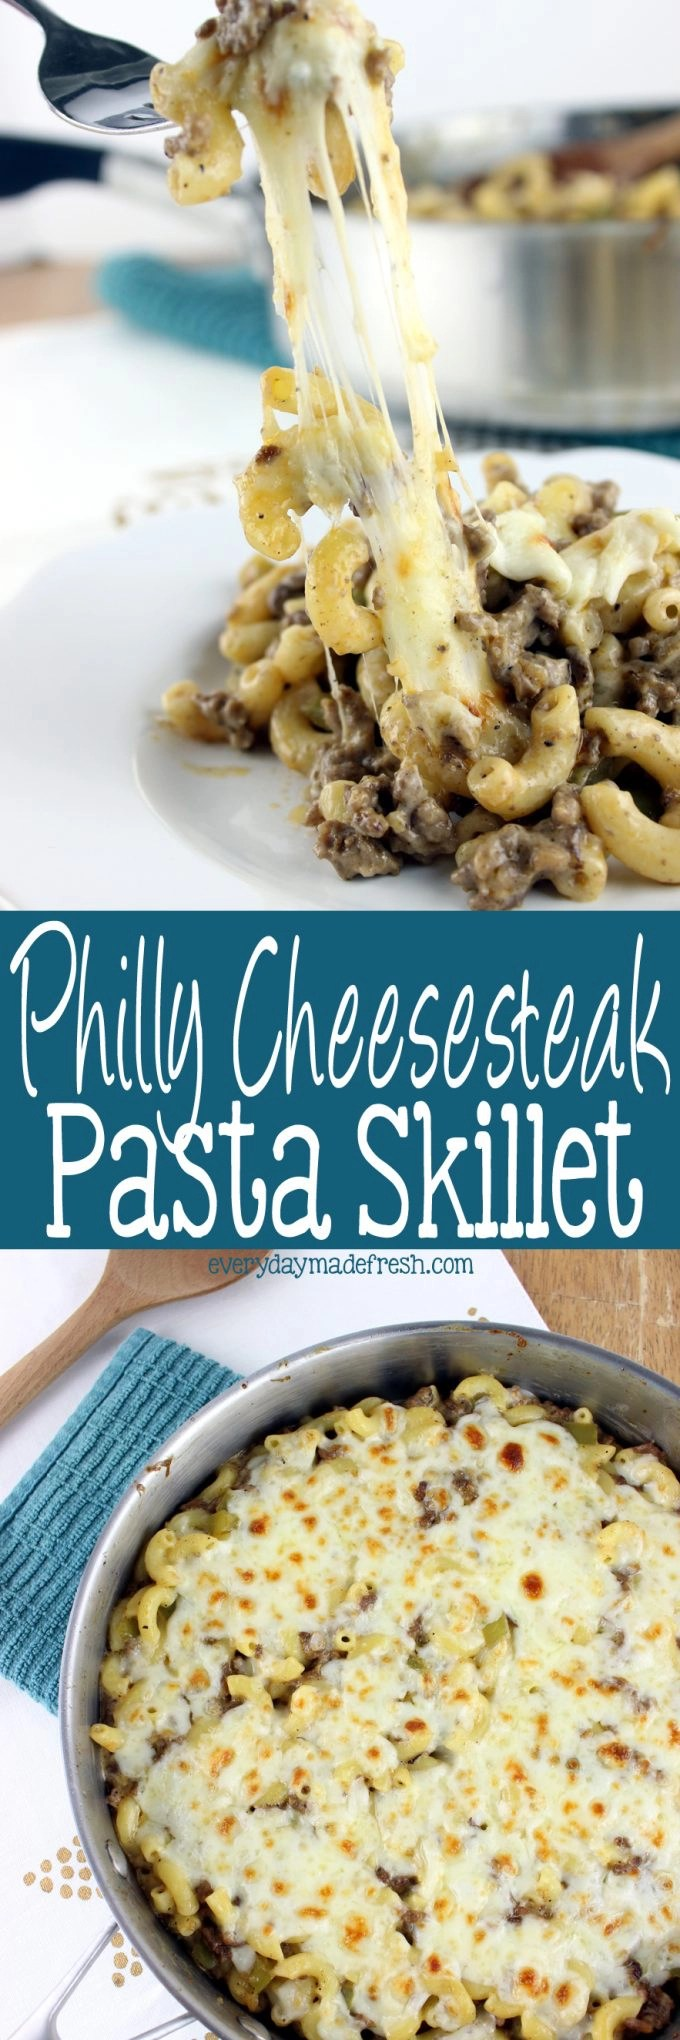 You're gonna love this Philly Cheesesteak Pasta Skillet!  All those flavors you love in a Philly Cheesesteak, but done in a mouthwatering comforting pasta dish.  | EverydayMadeFresh.com